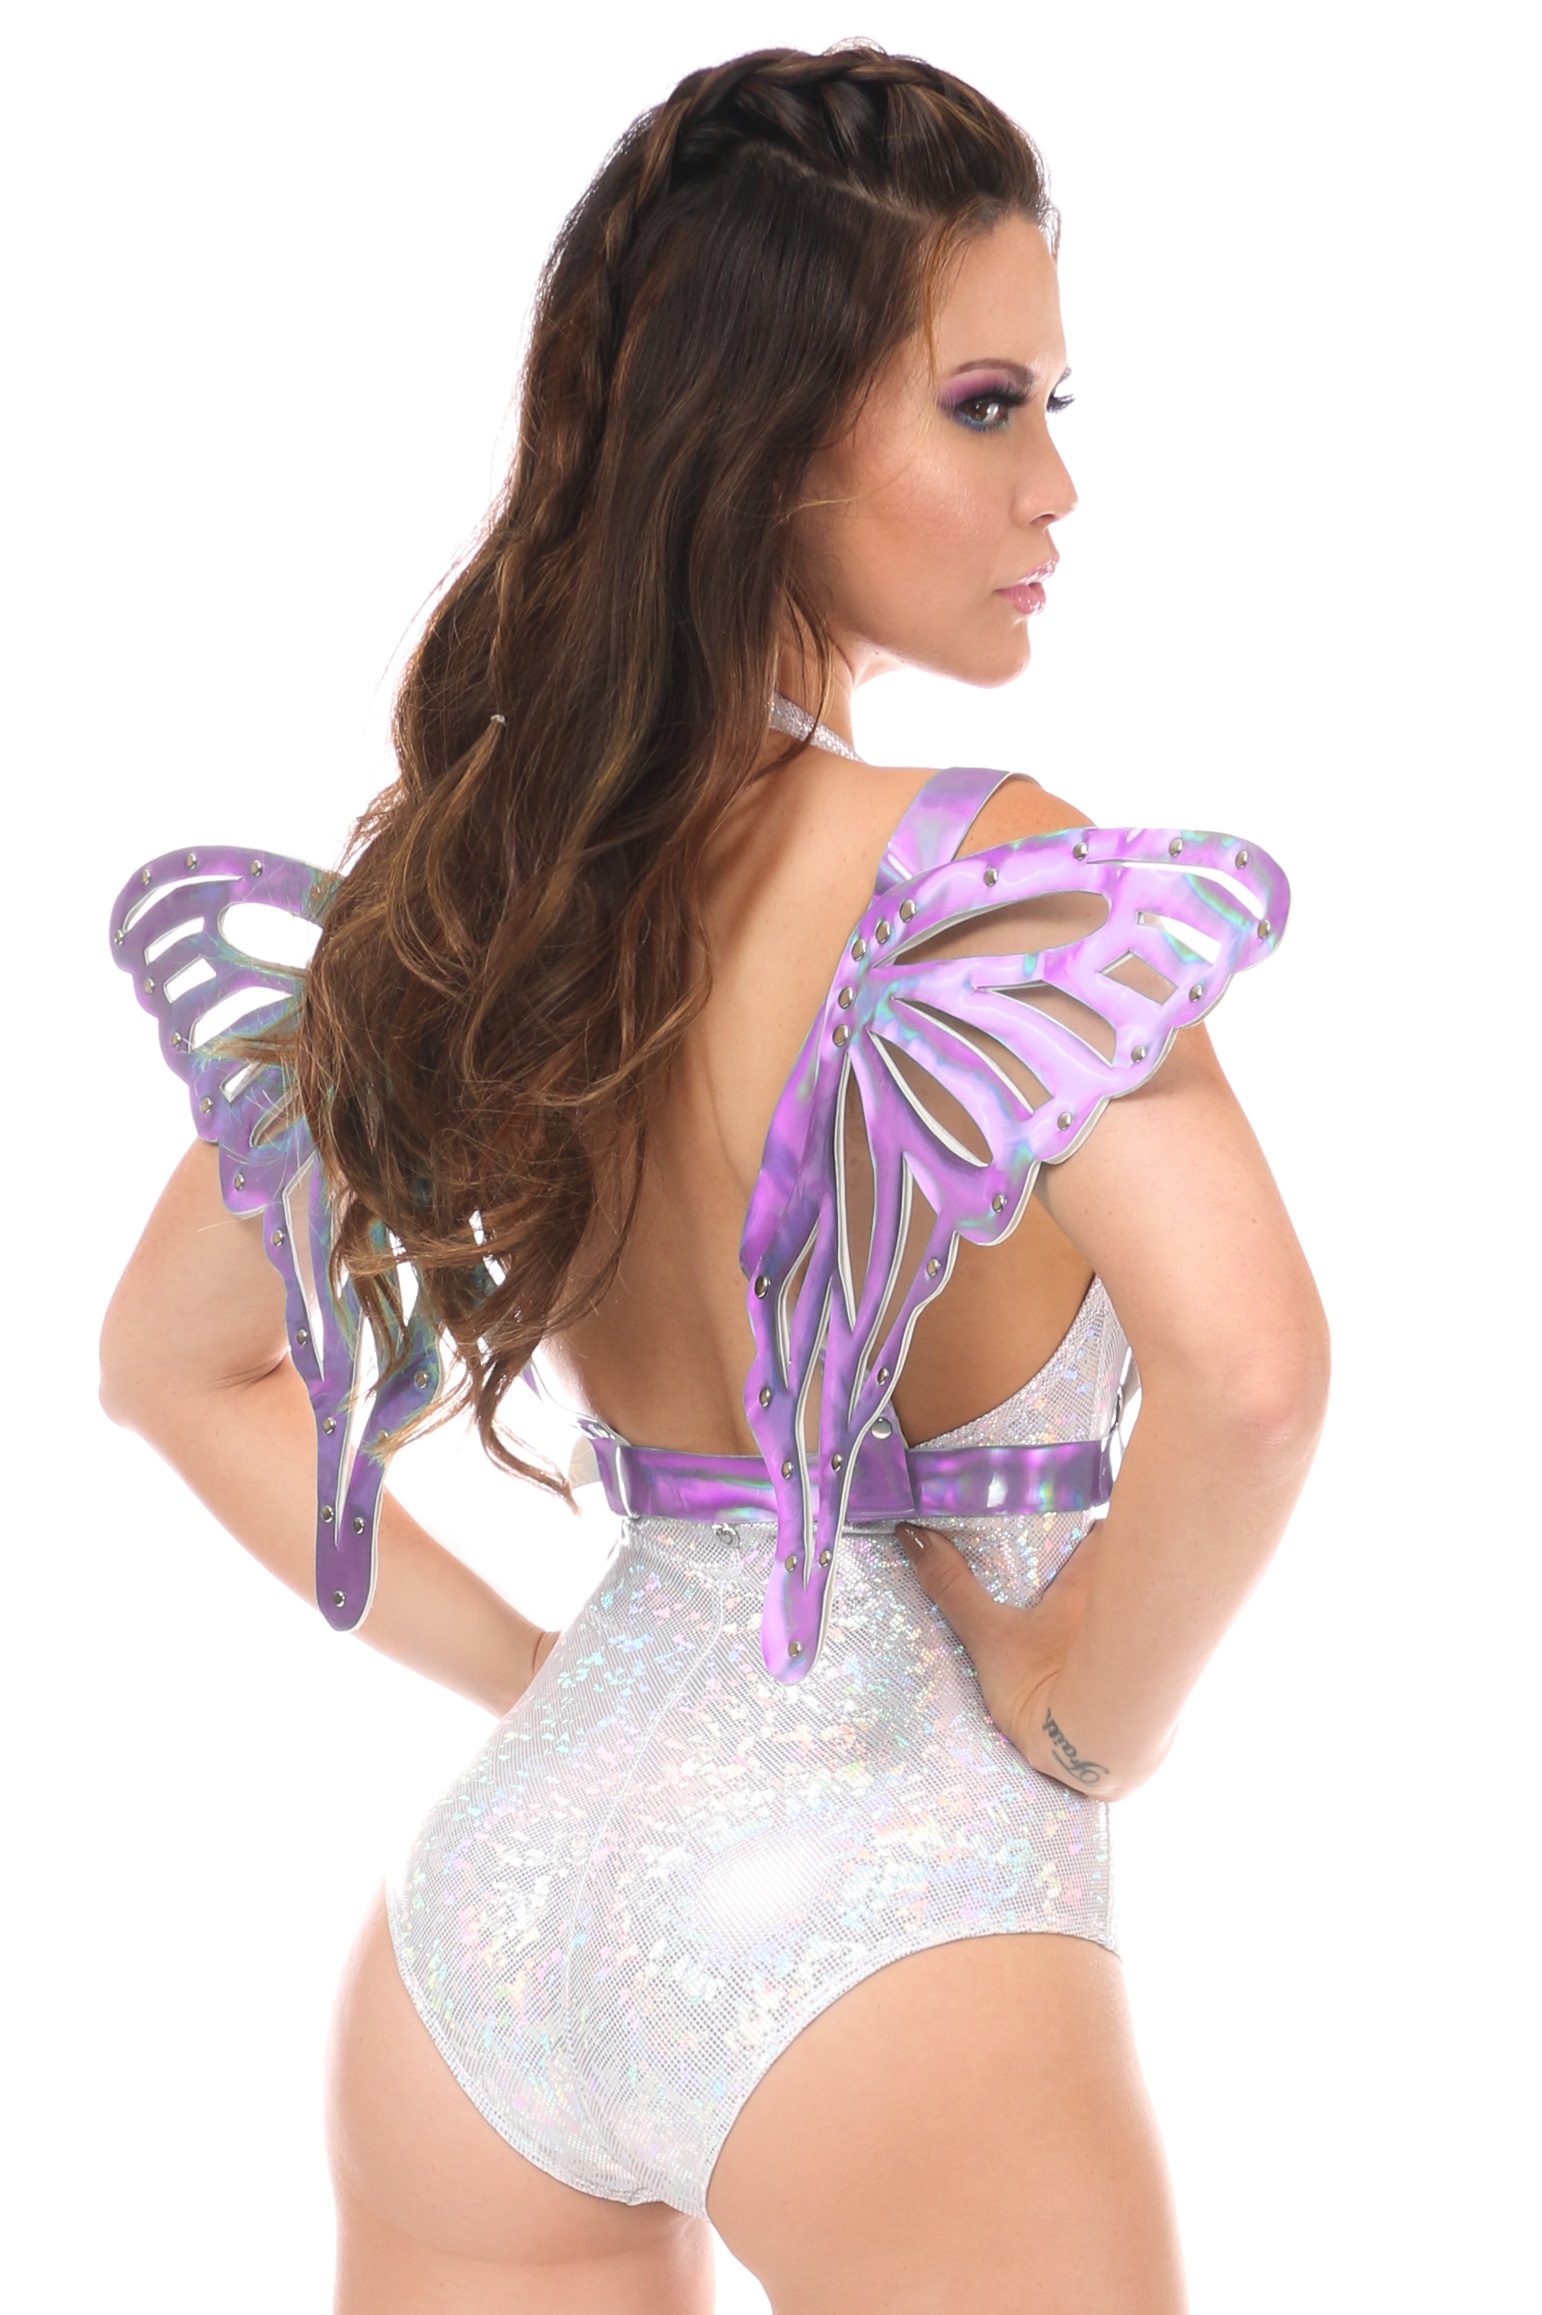 Lavender Holo Body Harness w/Wings - Large DASHAR-109